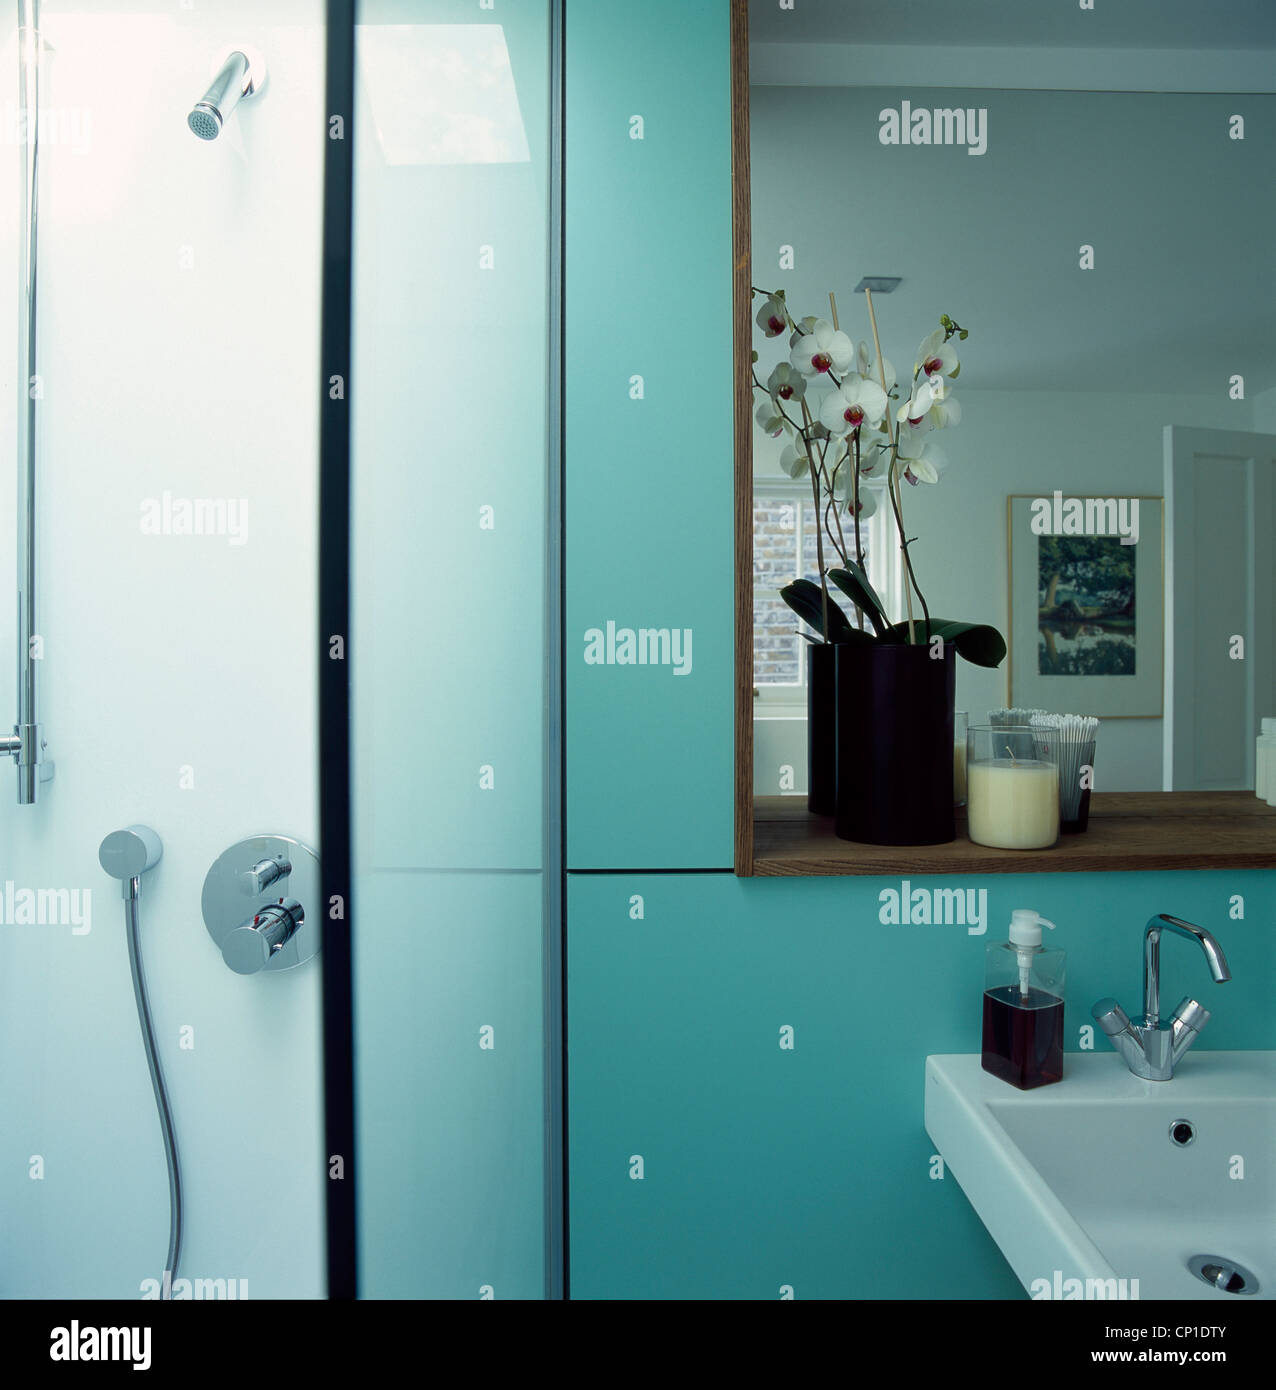 Shower Fittings Stock Photos & Shower Fittings Stock Images - Alamy